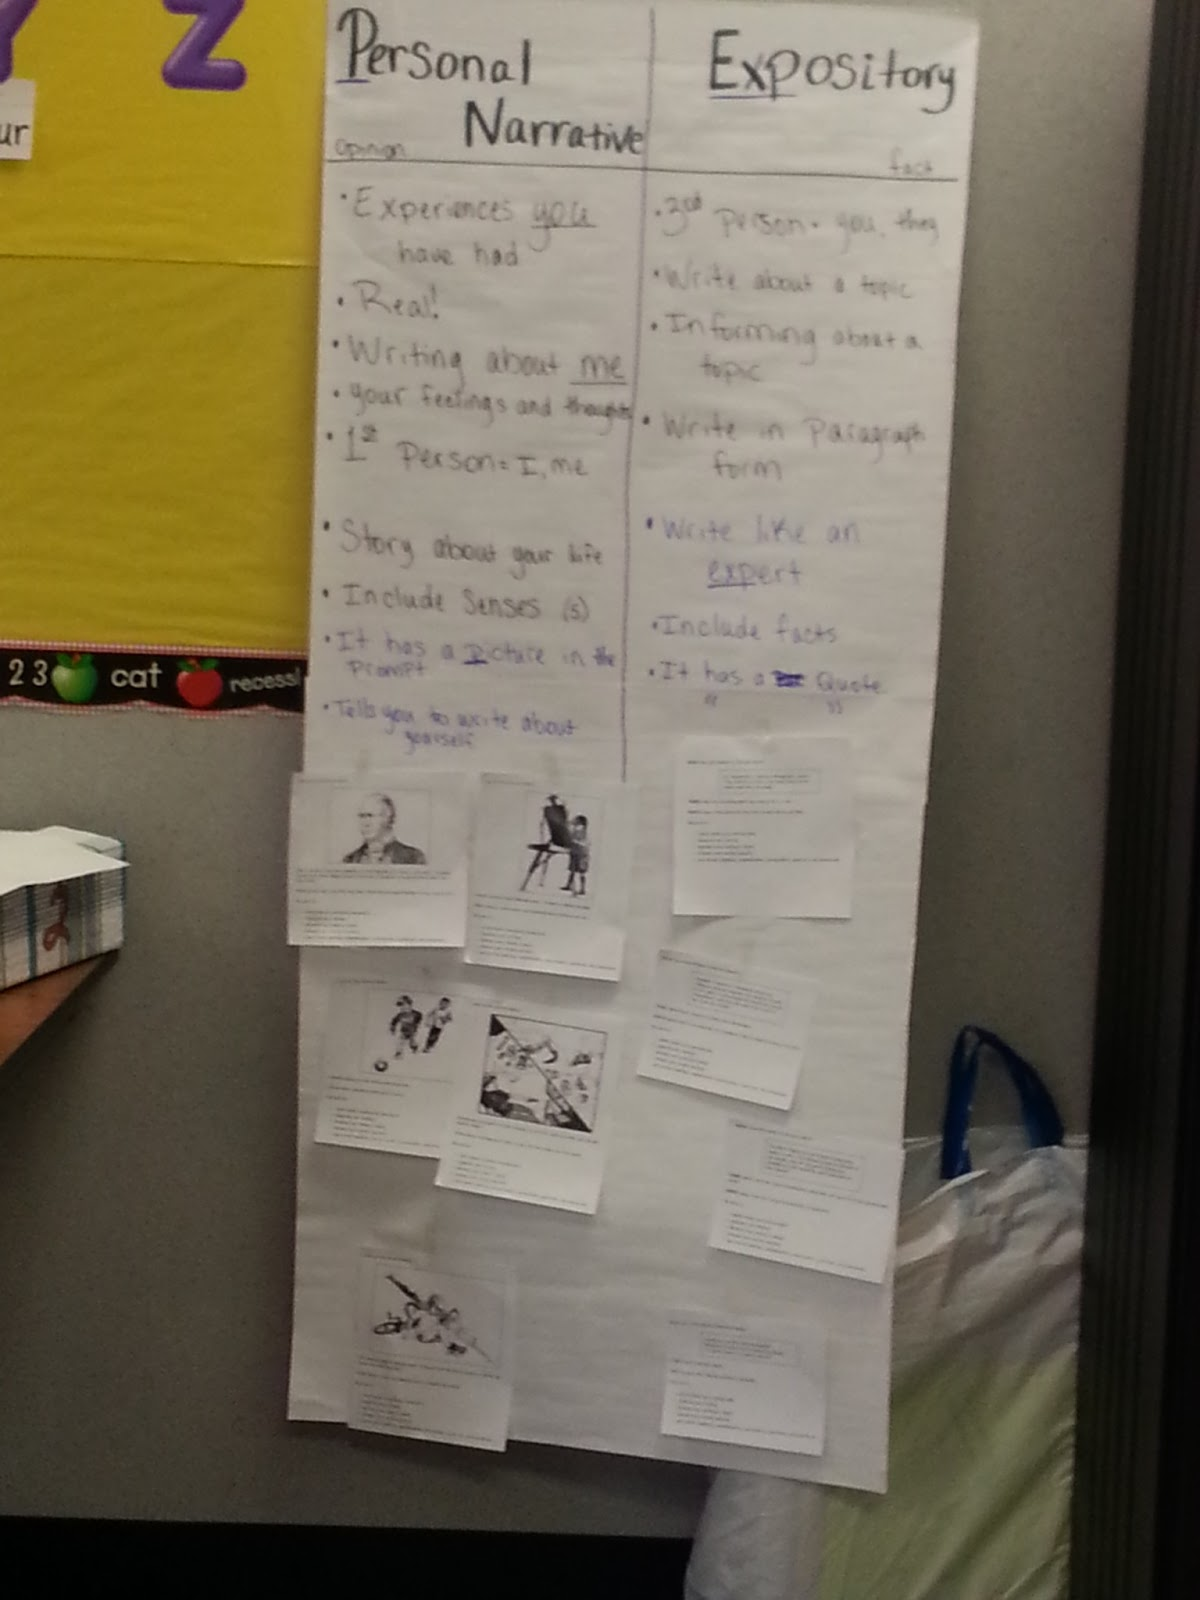 photo of t-chart listing elements of personal narrative and expository prompts